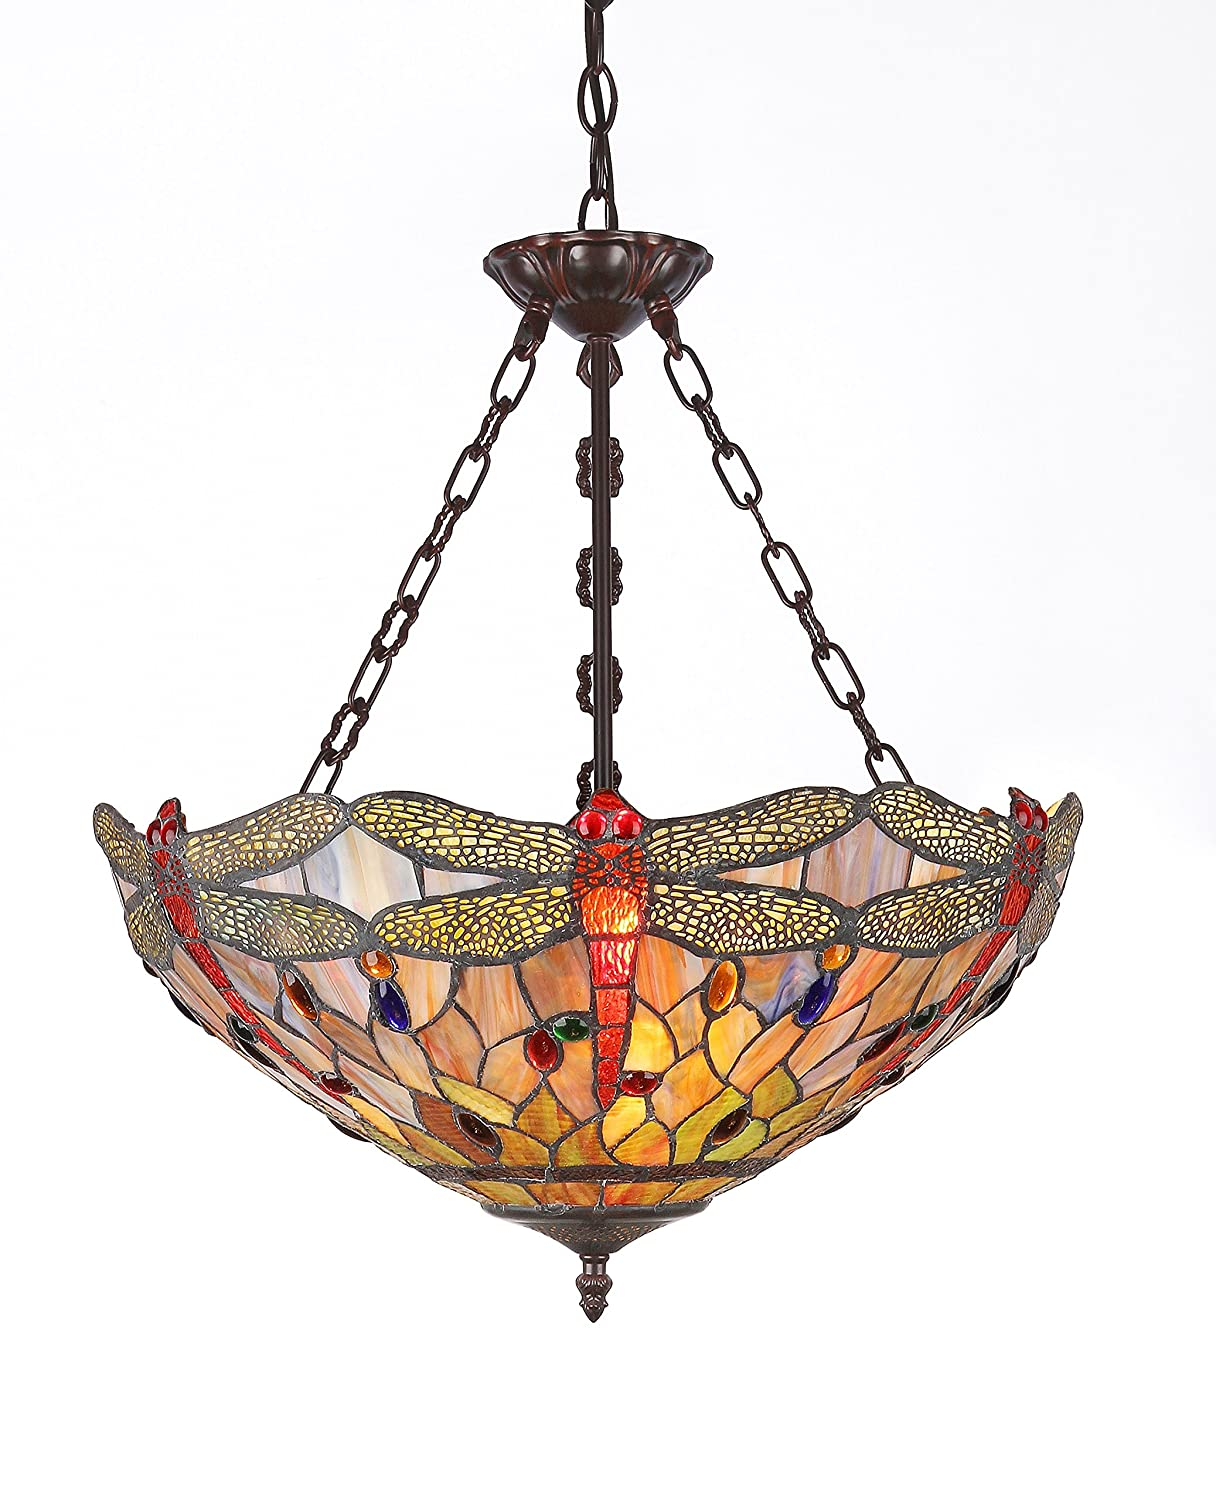 Chloe Lighting Inc Ch2825db18 Uh3 Tiffany Style Dragonfly 3 Light Inverted Ceiling Pendant Fixture With Shade 18 X 23